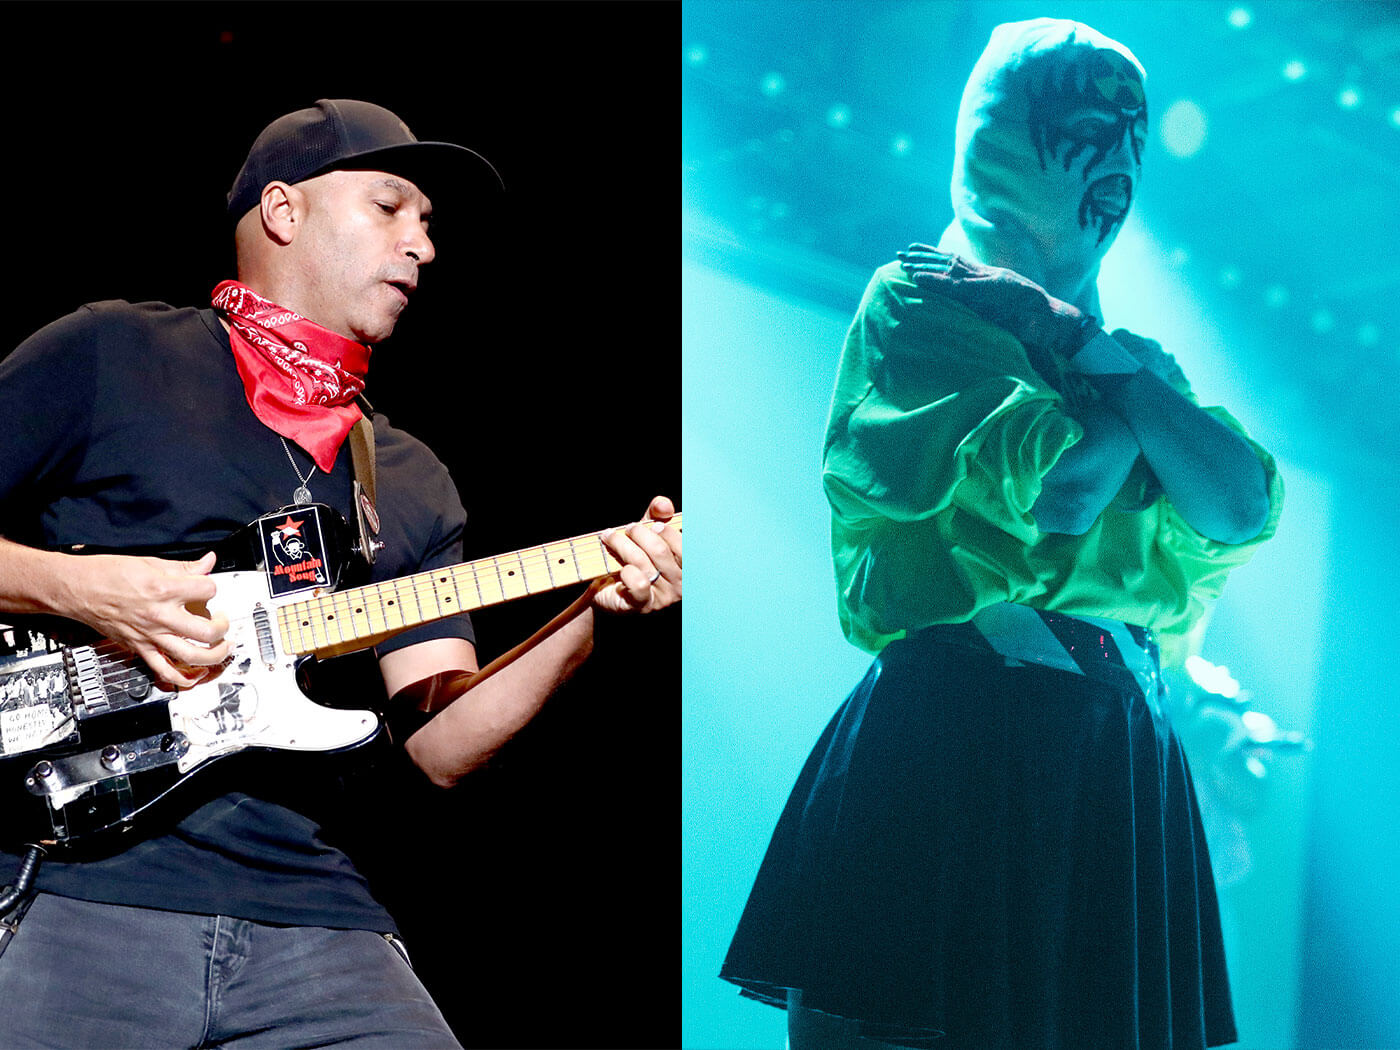 Activismo musical: Tom Morello se une a Pussy Riot en 'Weather Strike'